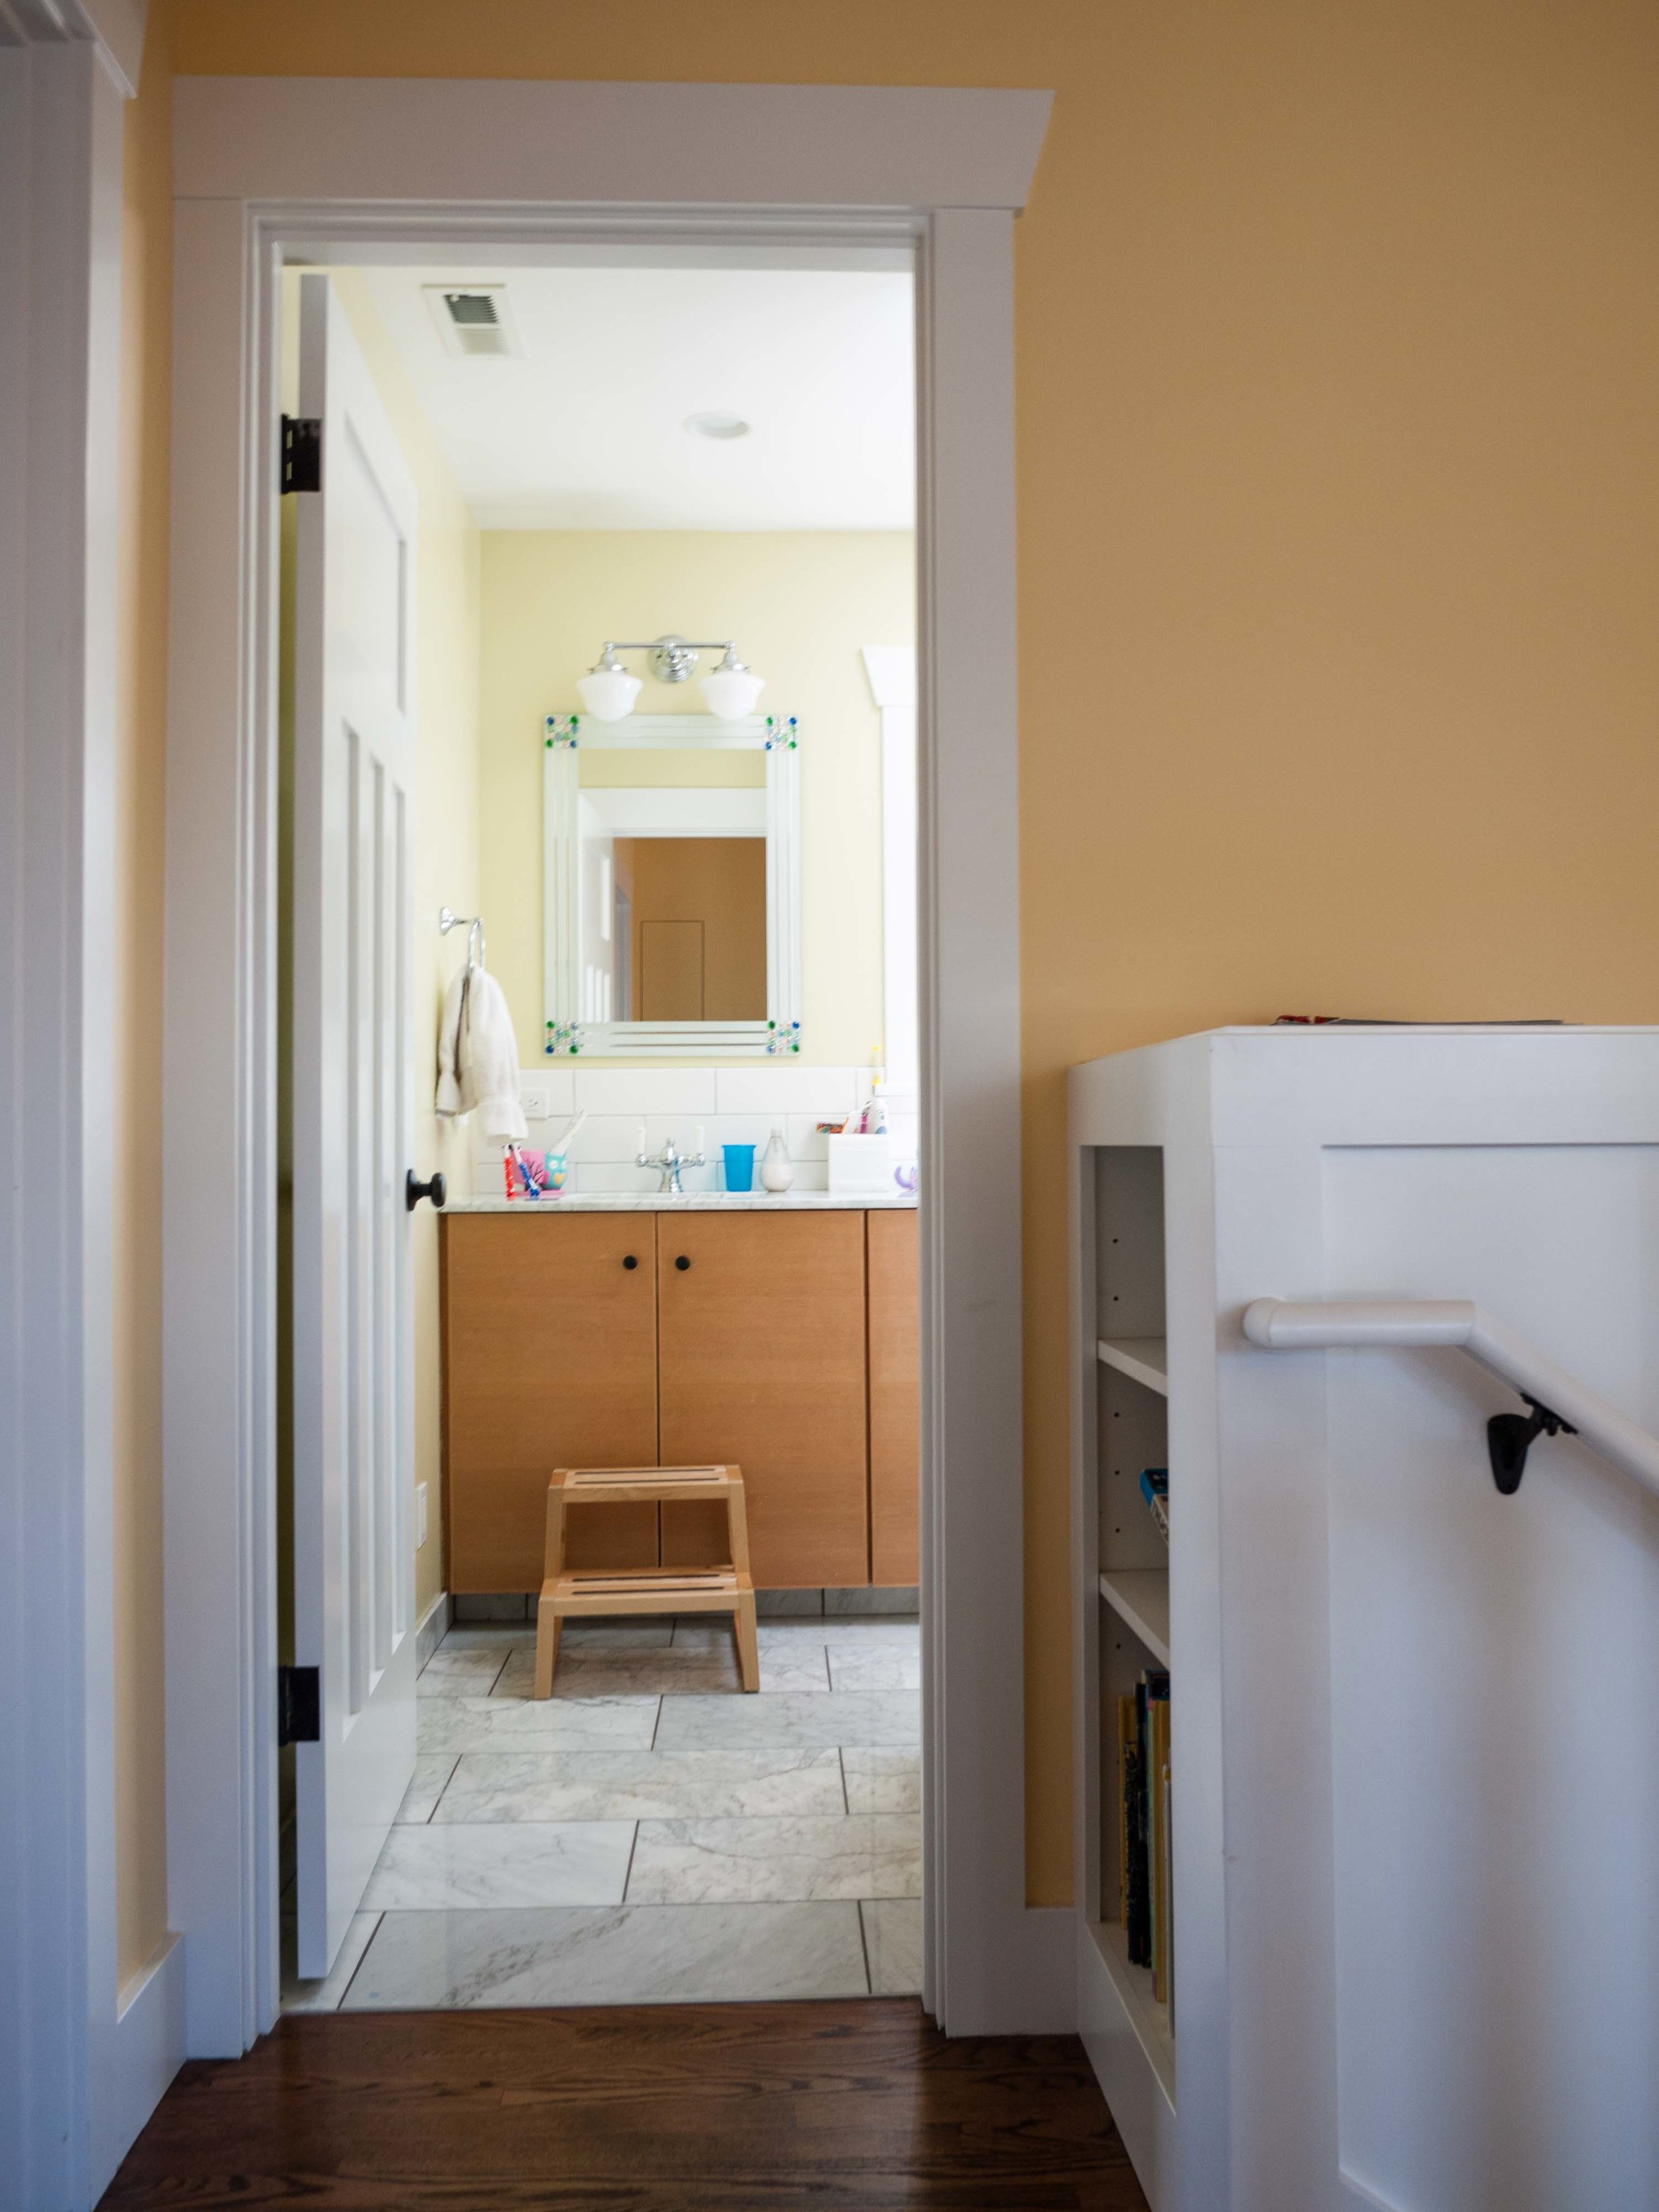 At the top of the stairs and adjacent to the kids' rooms is the kids' bathroom.